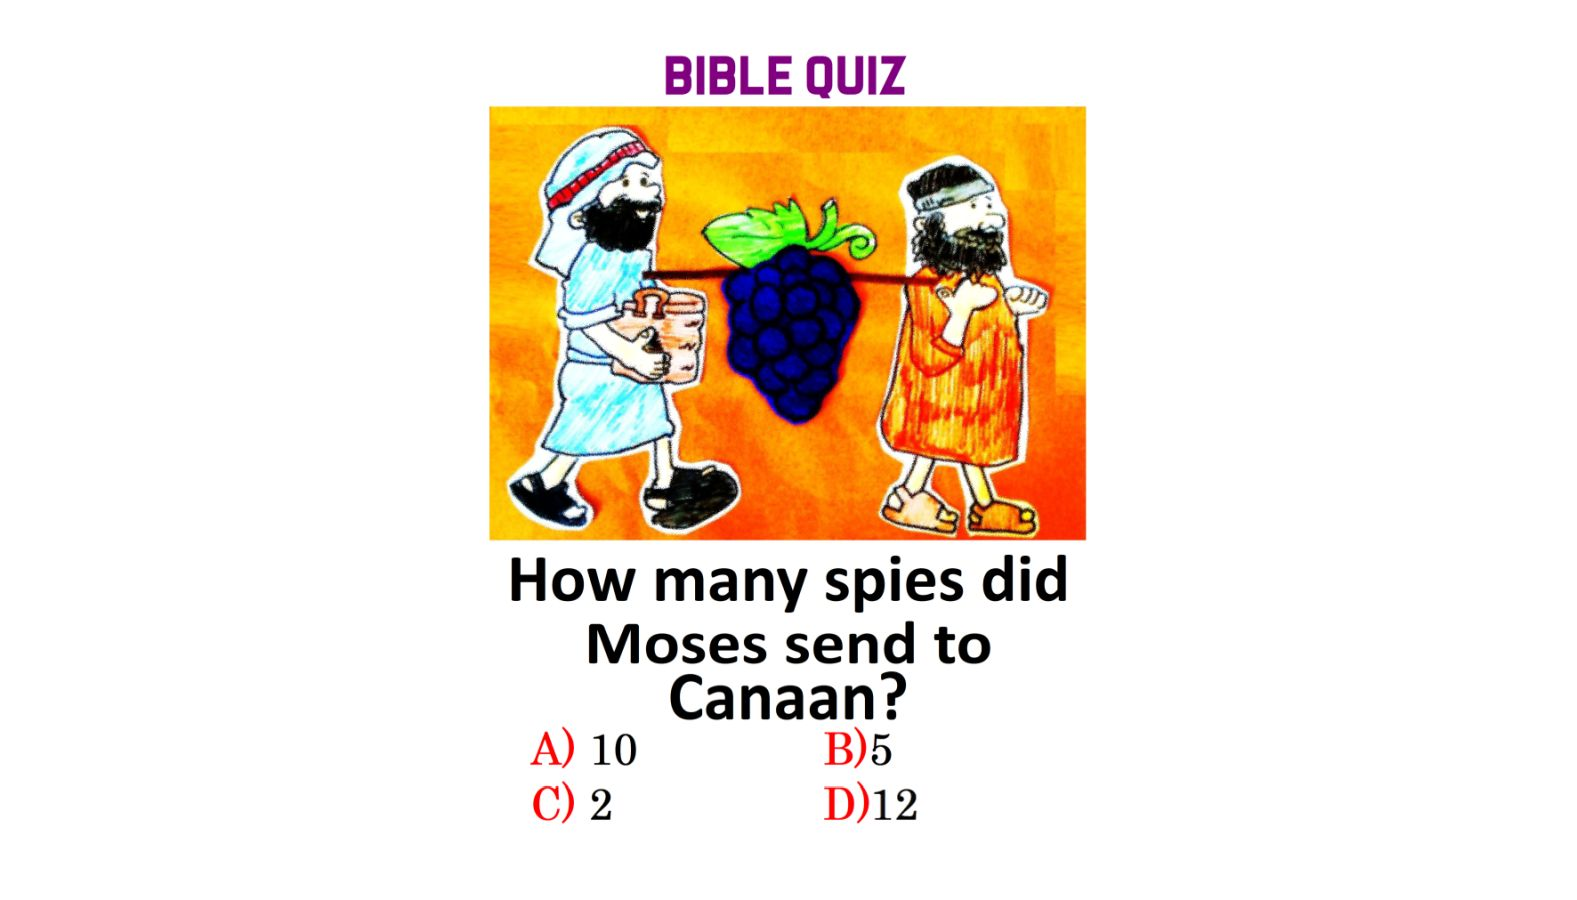 How Many Spies Did Moses Send To Canaan